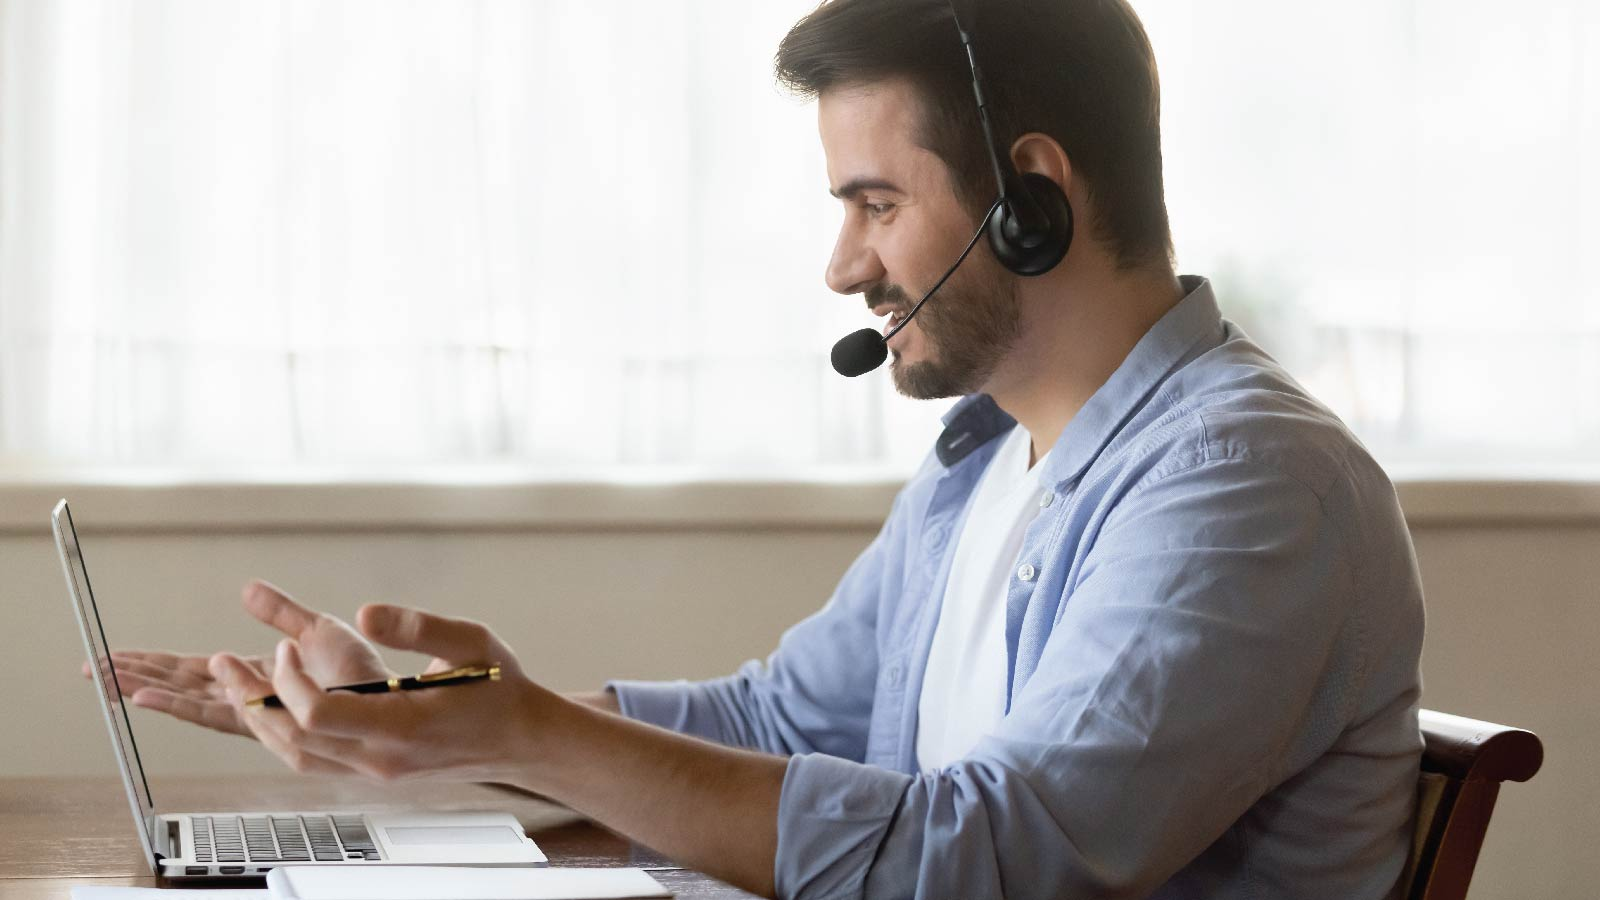 Remote call centers numbers increase due to the pandemic